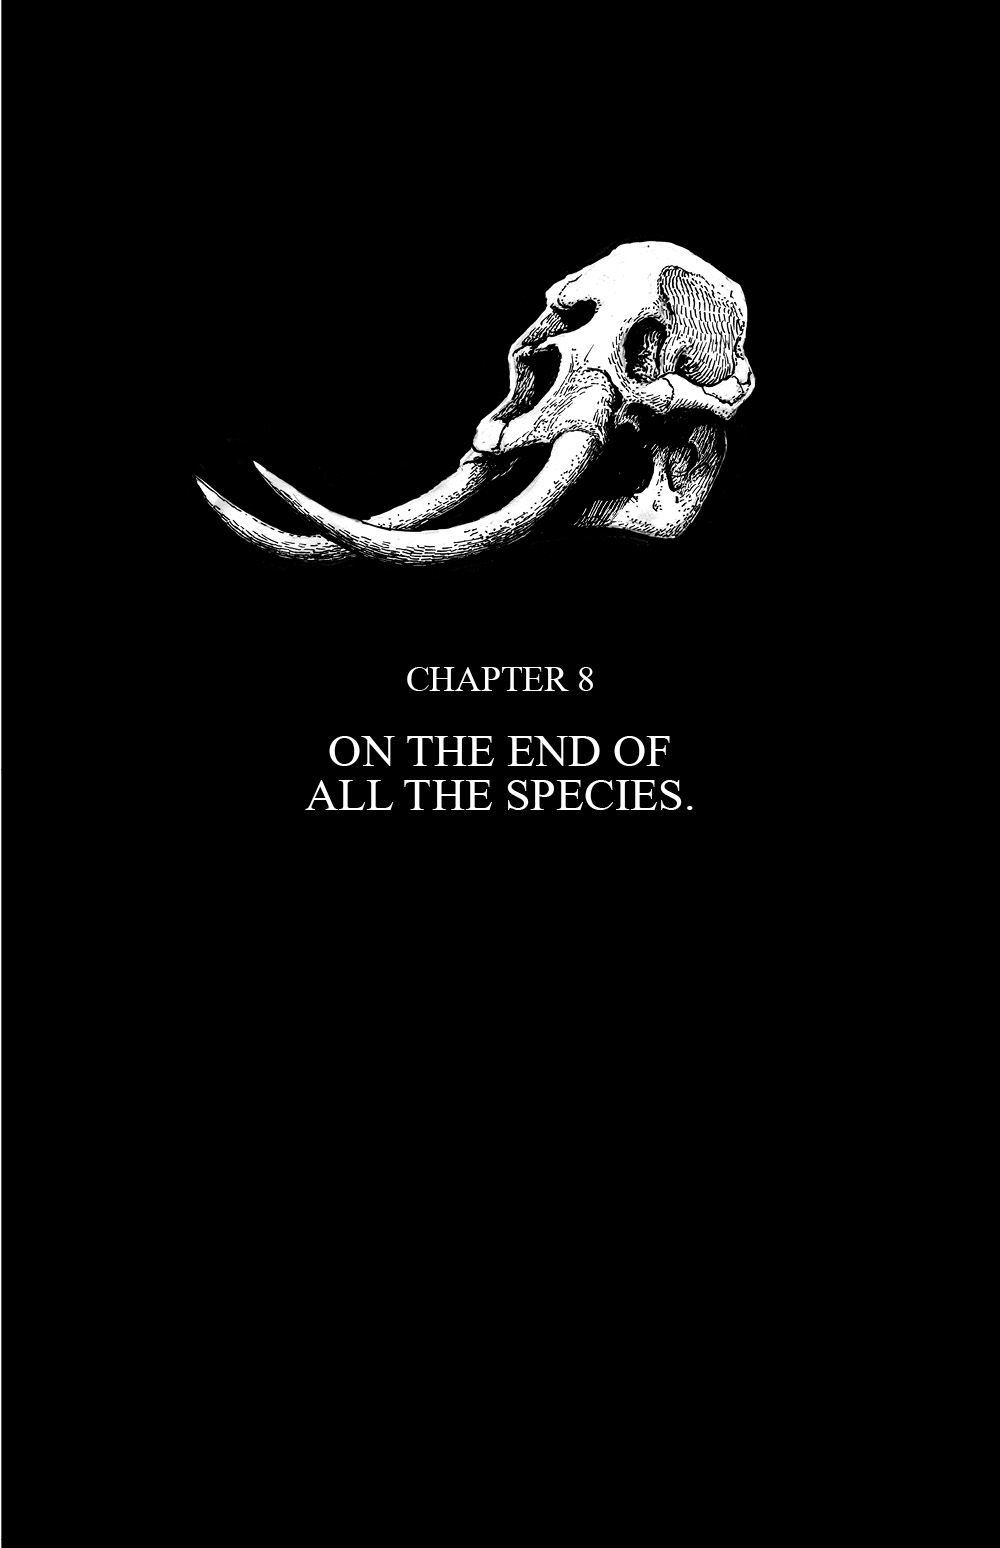 THE SKELETON Chapter #8